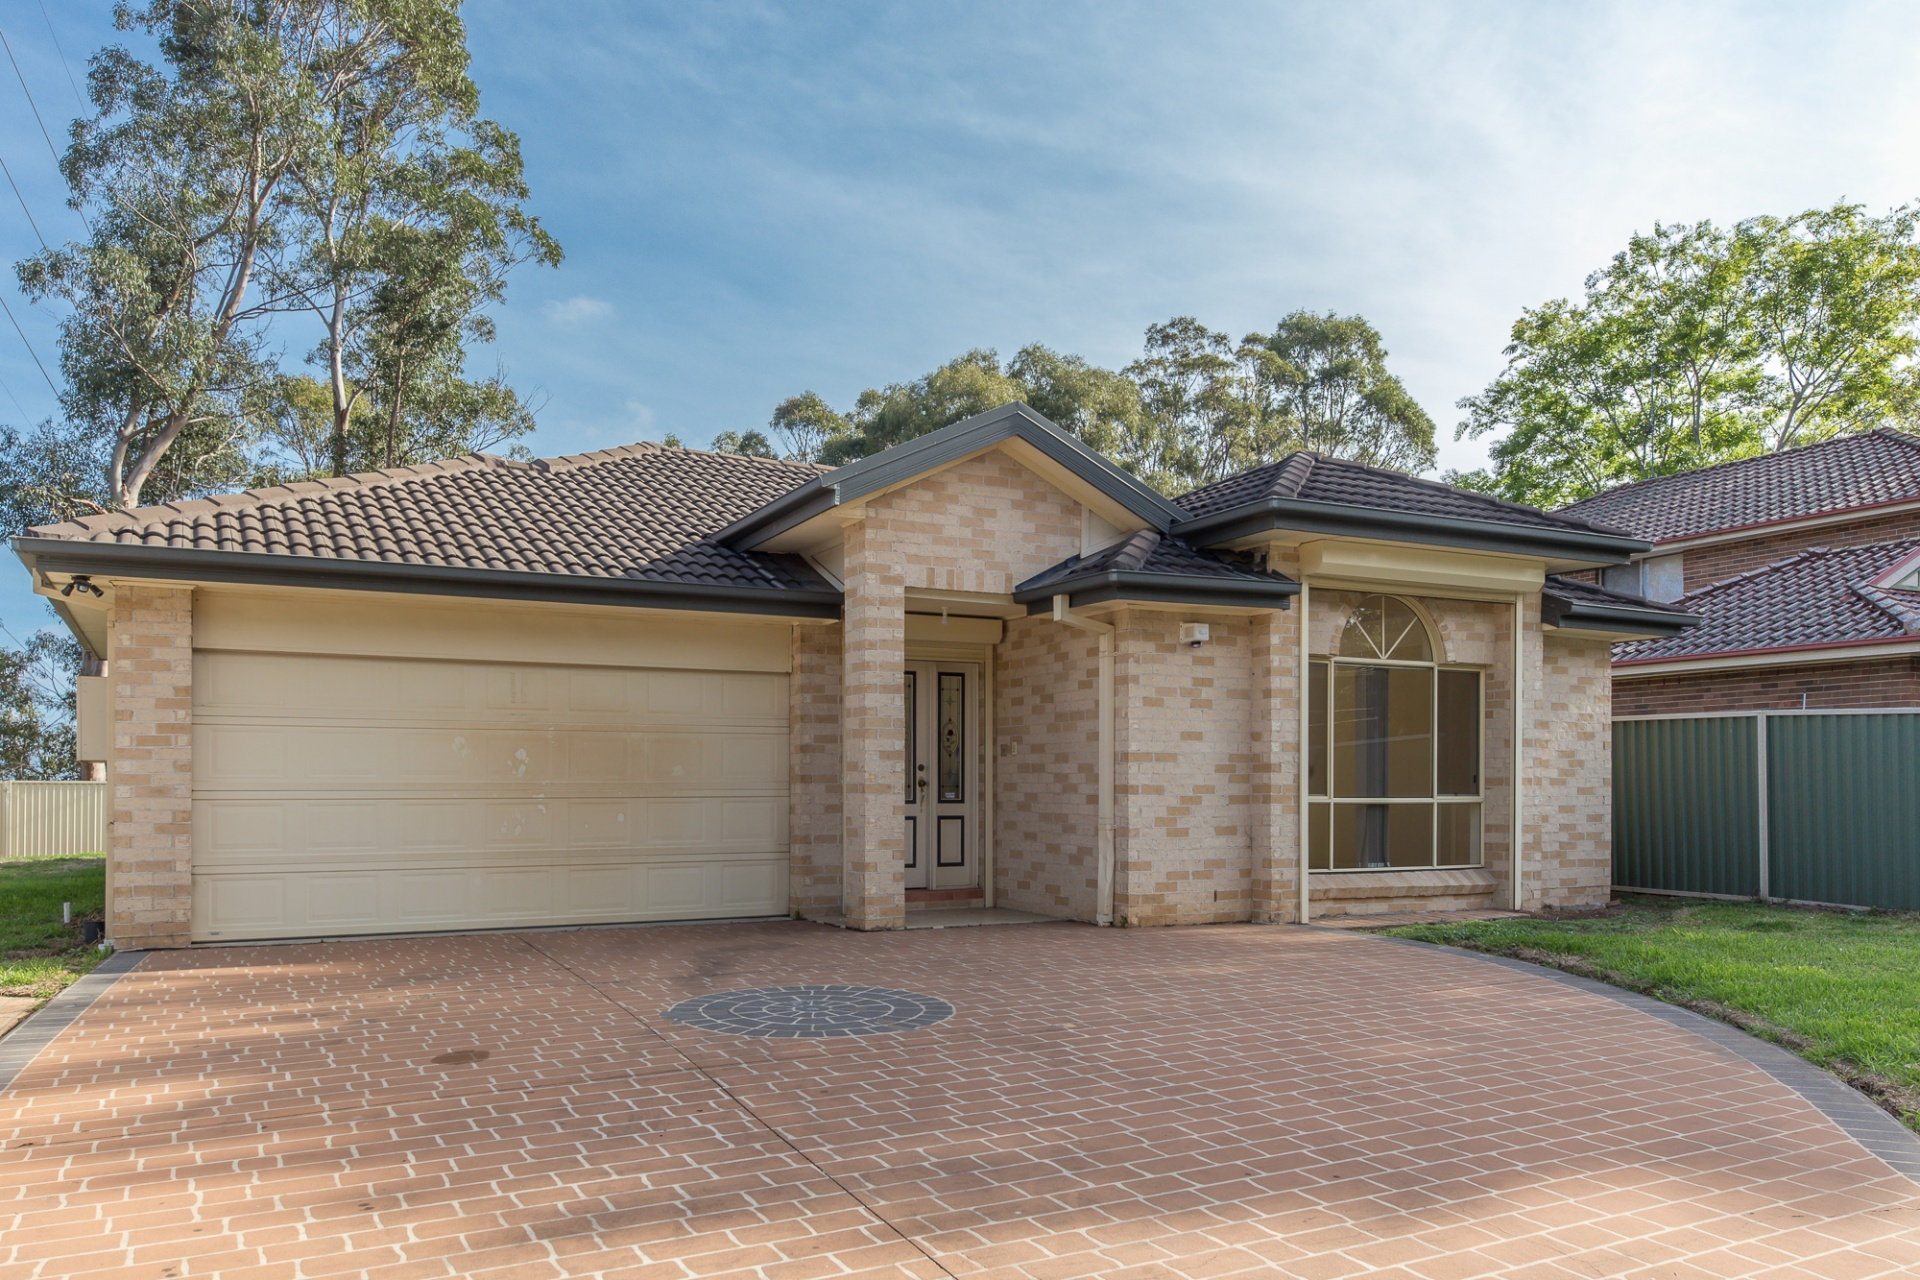 4 Rooms, House, Leased, Castle Hill Road, 2 Bathrooms, Listing ID 1262, West Pennant Hills, NSW, Australia,